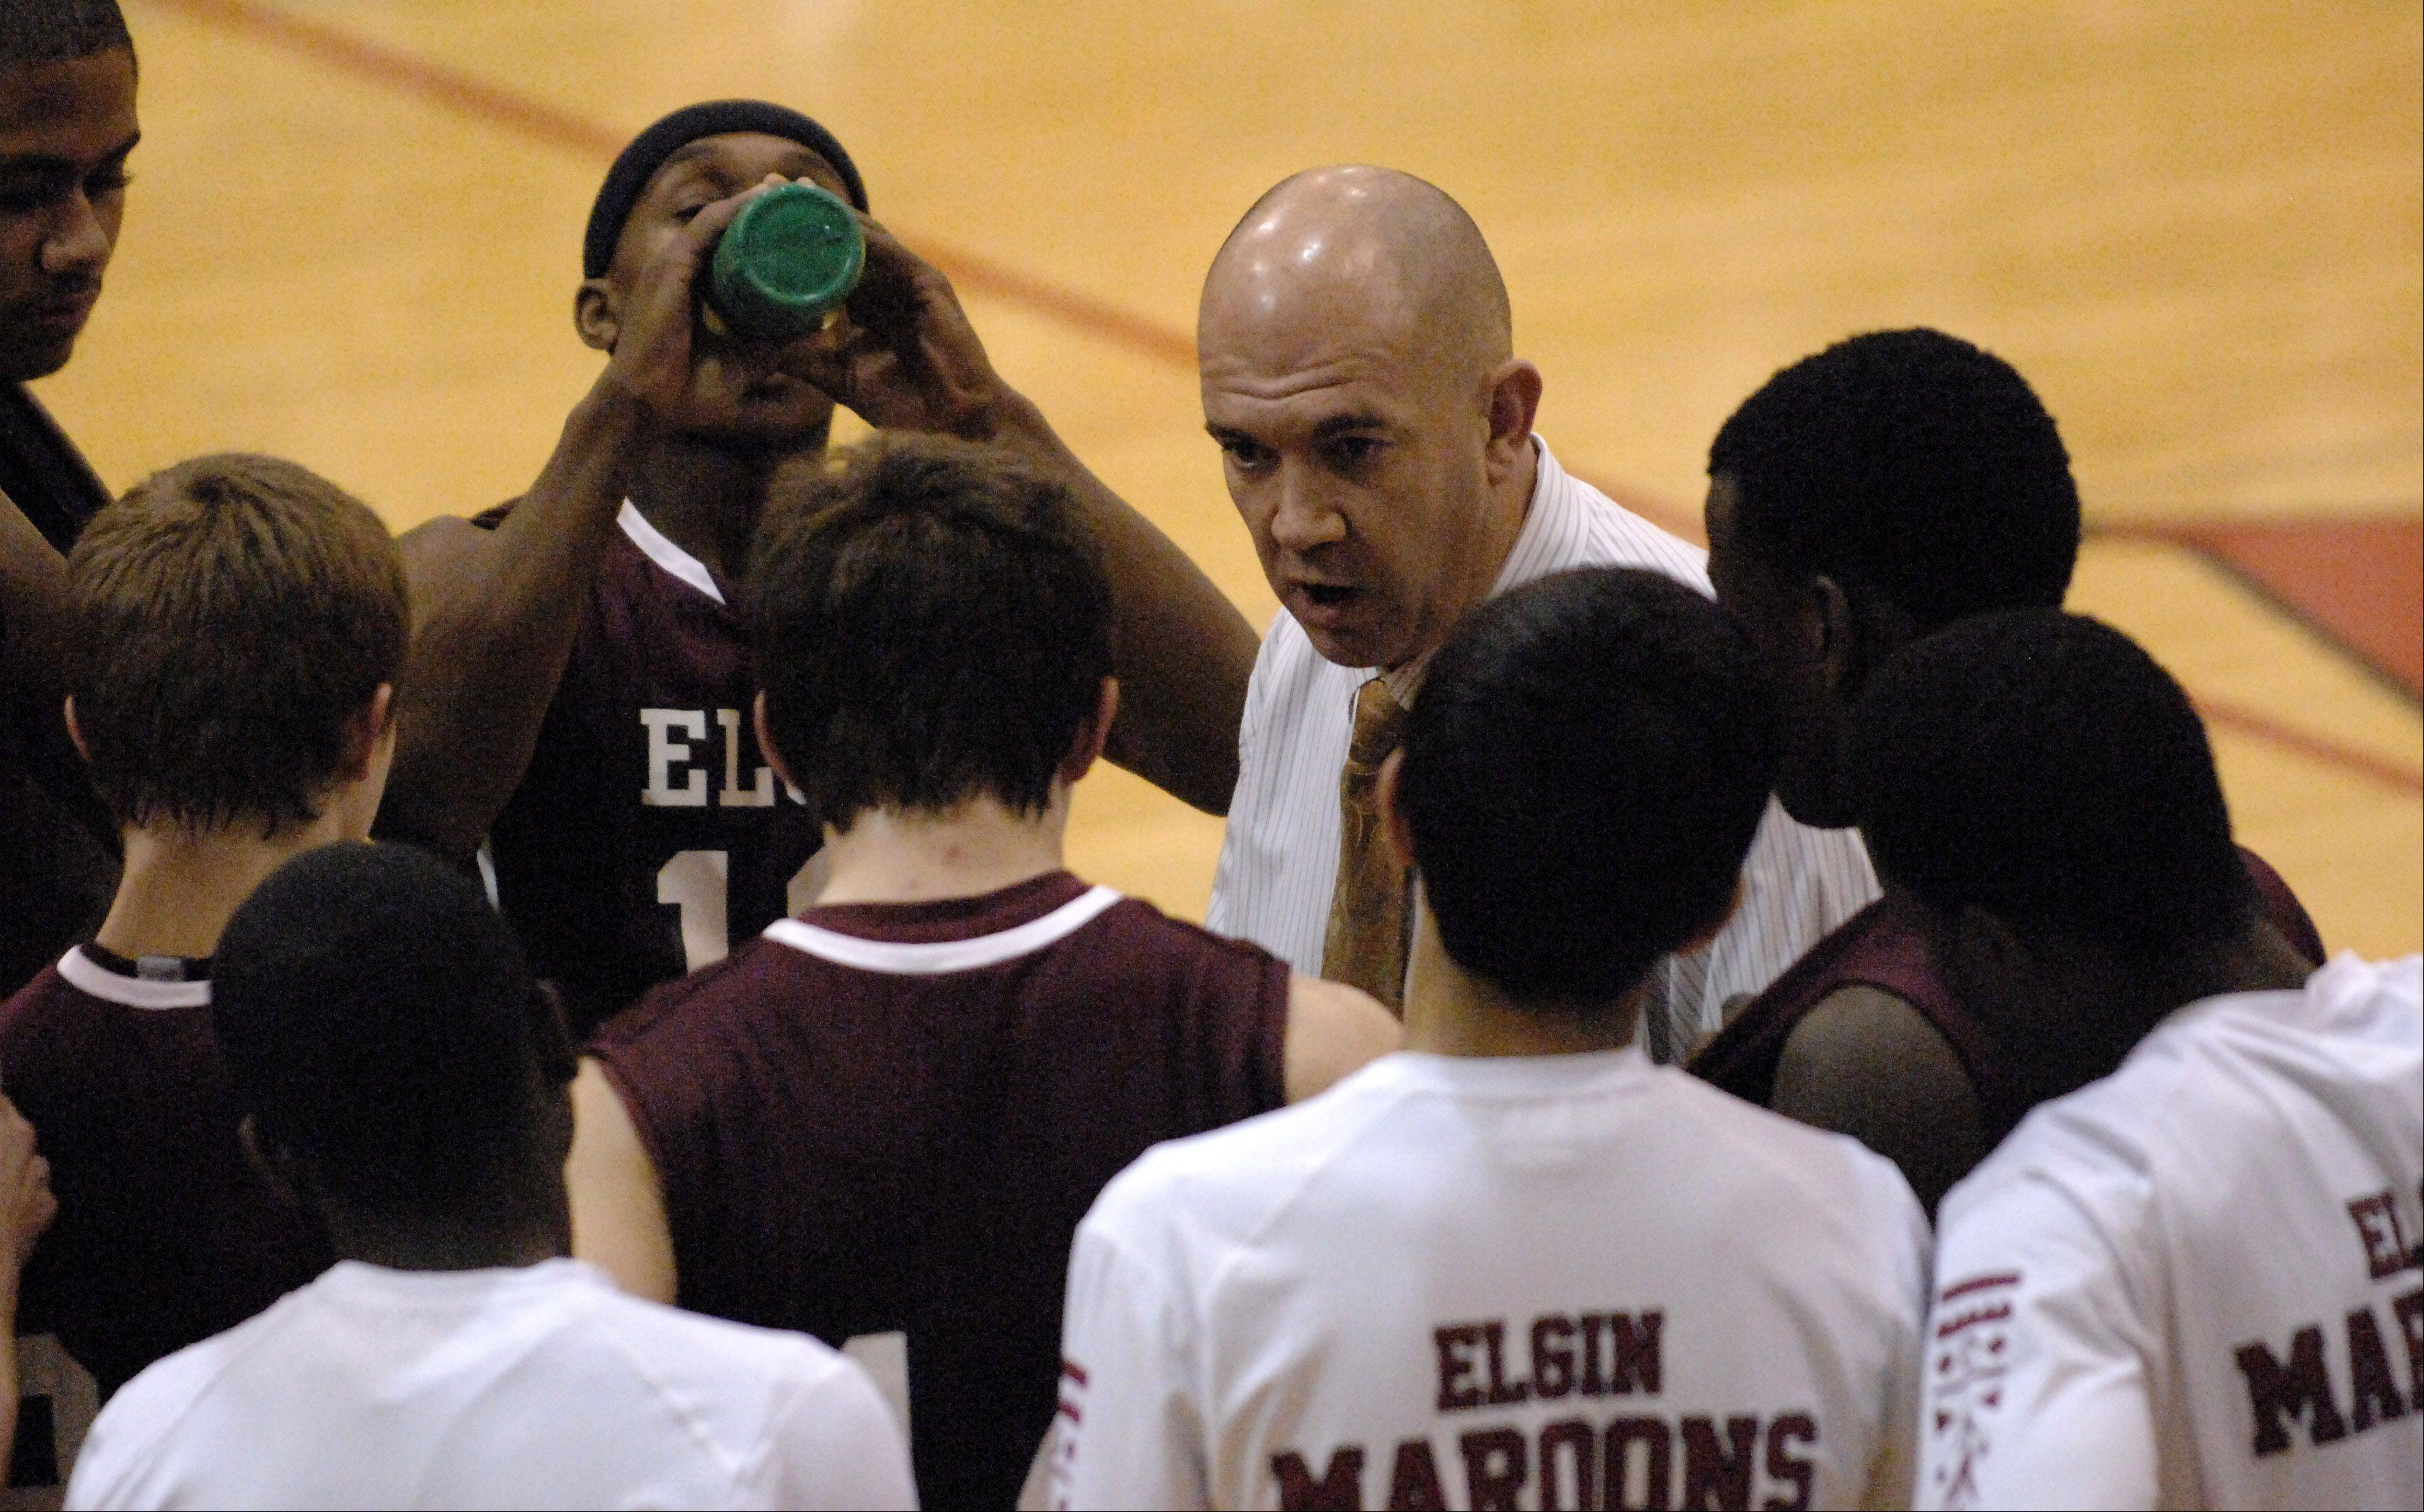 Images from the Elgin vs. Batavia boys basketball game Tuesday, January 15, 2013.